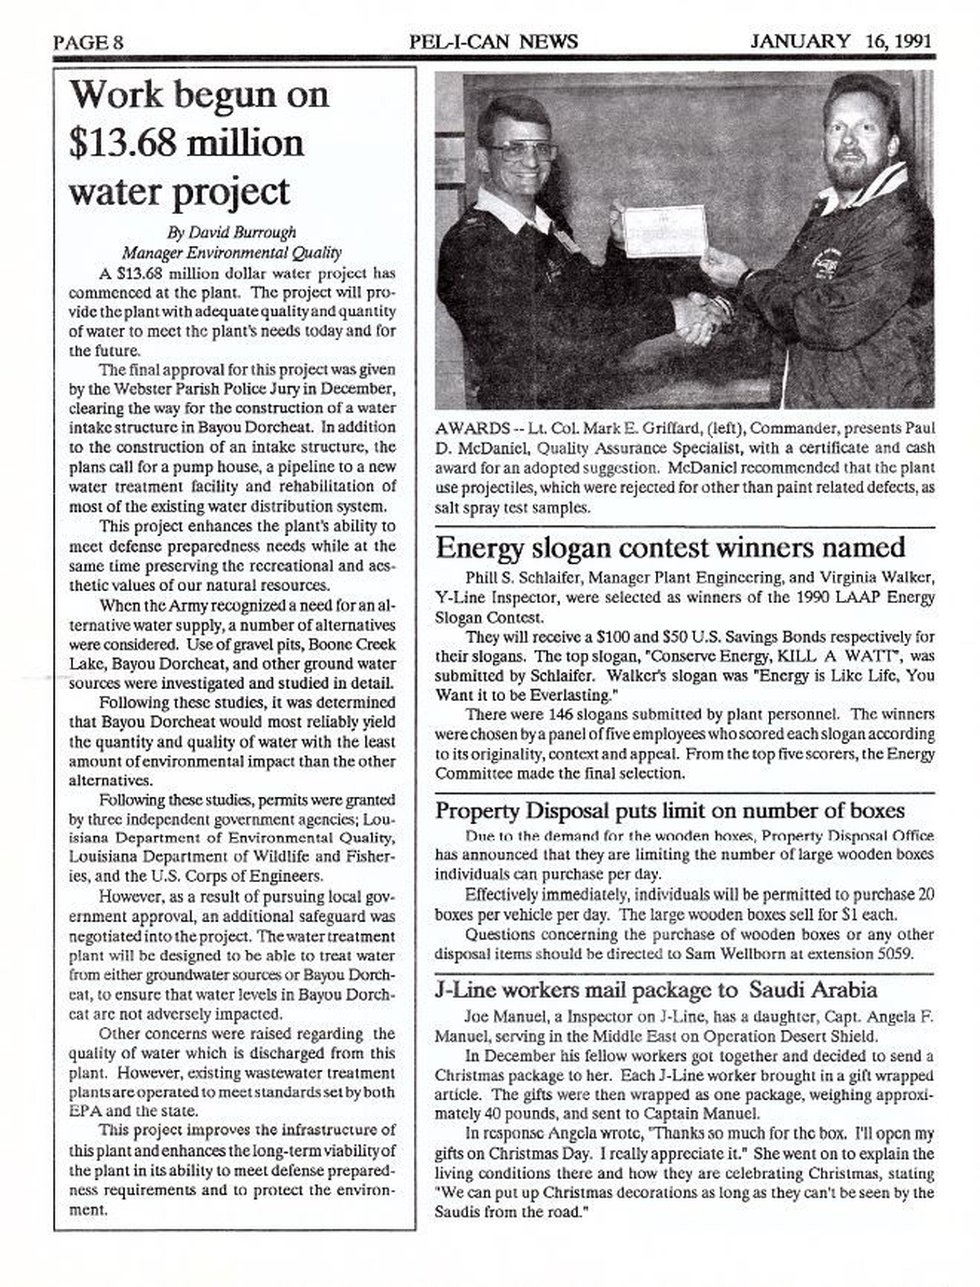 This article written in 1991 was published in the company's newsletter concerning the...